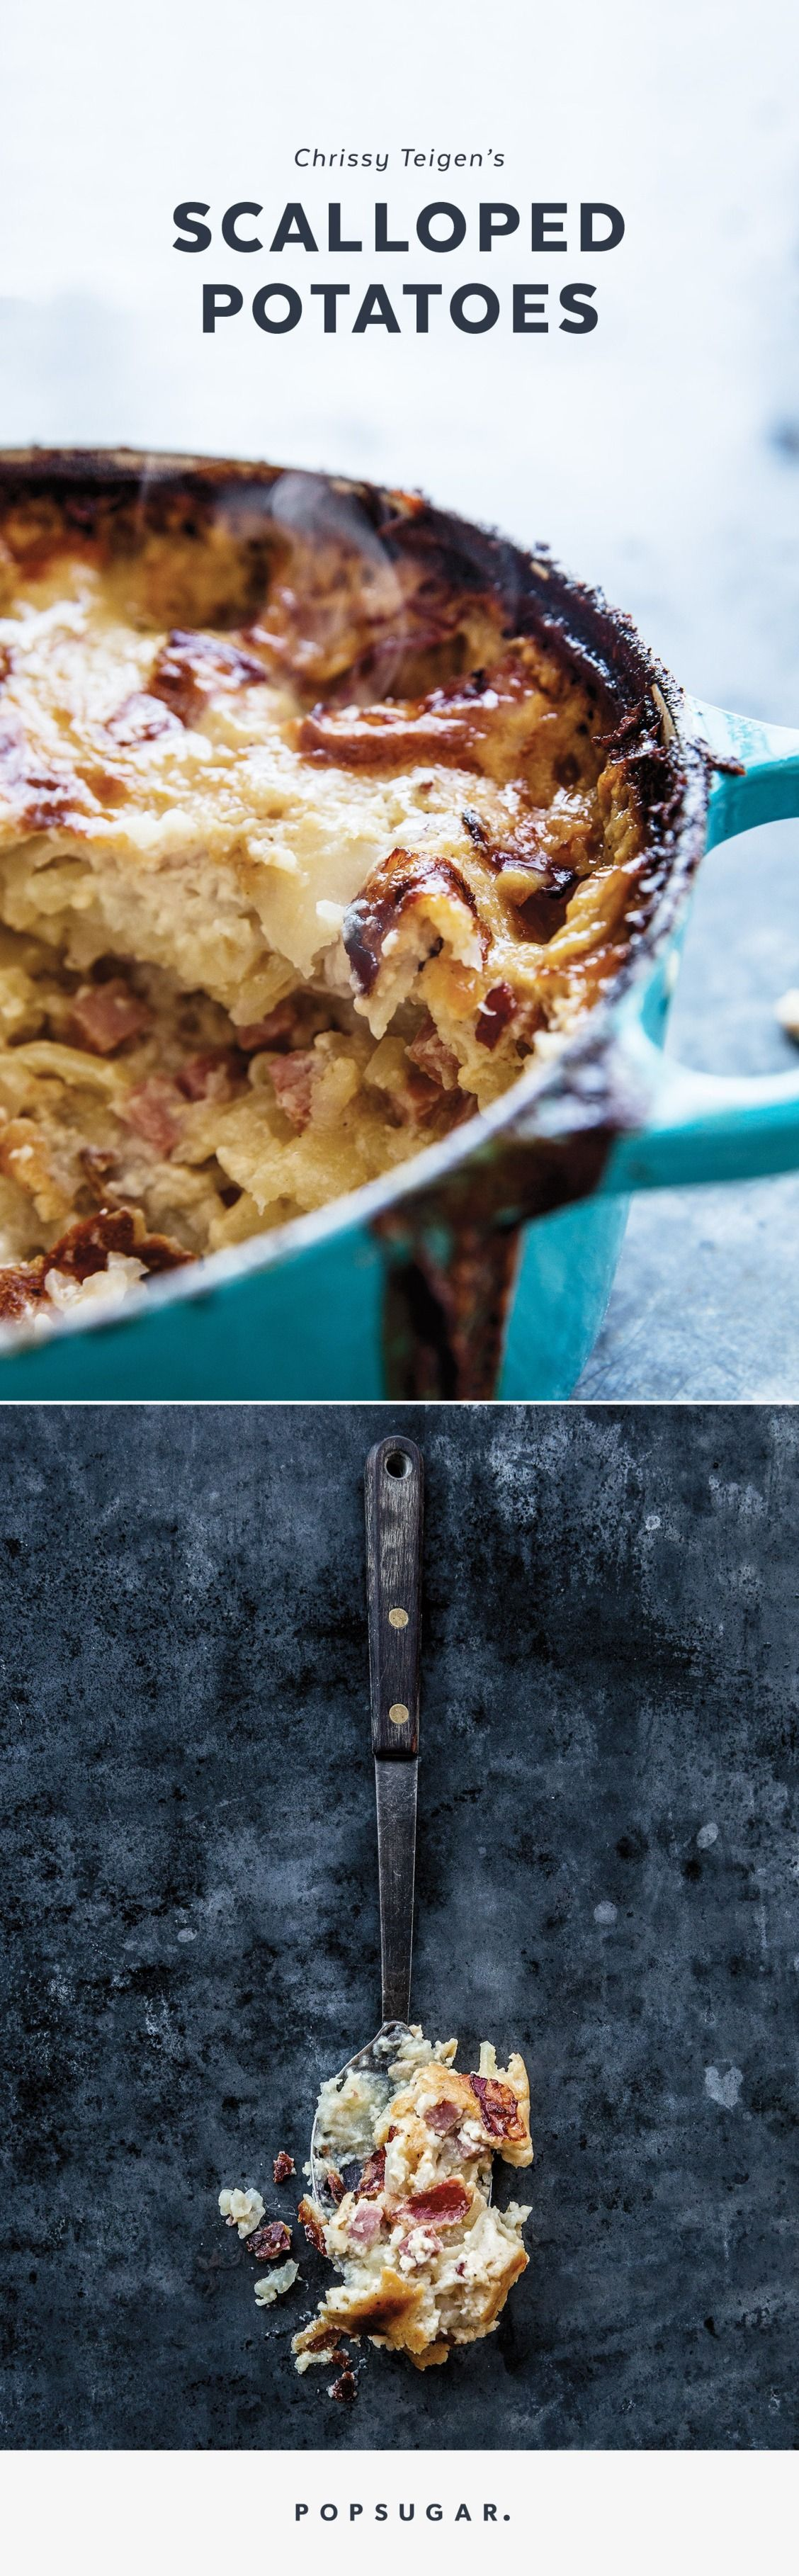 Chrissy teigen says these scalloped potatoes put her into